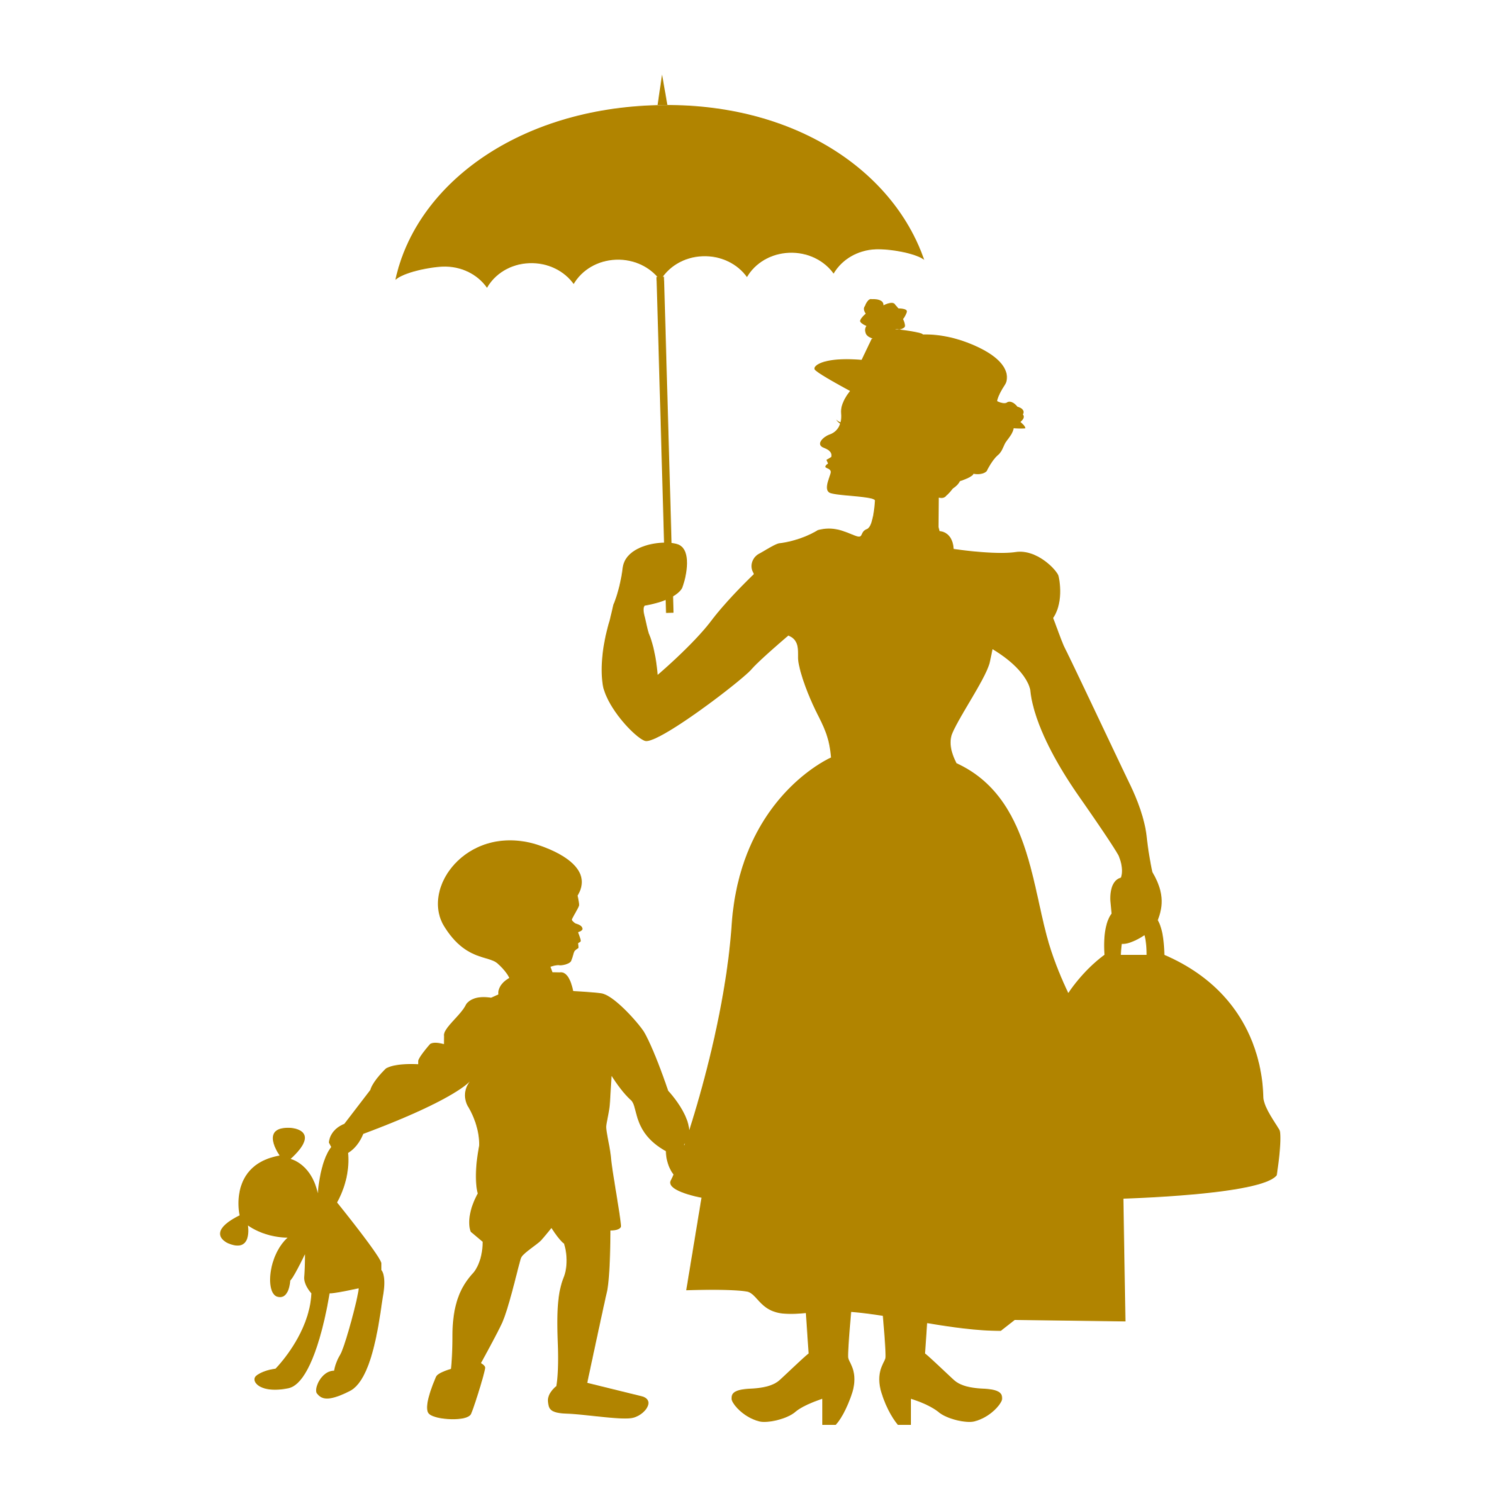 Toddler clipart nanny. The hotel